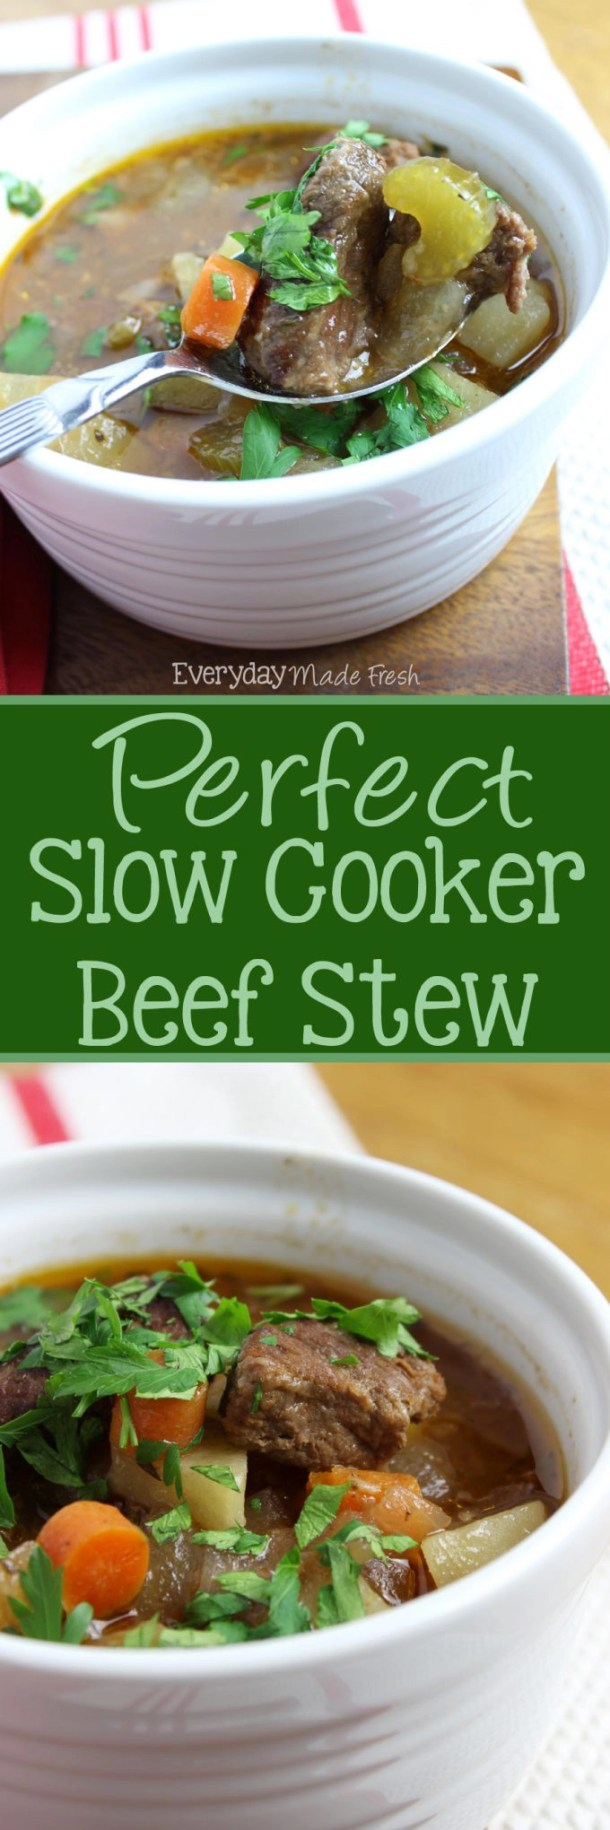 Perfect Slow Cooker Beef Stew is hearty, comforting, and loaded with chunks of beef, carrots, celery, and potatoes - it's everyone's favorite! | EverydayMadeFresh.com